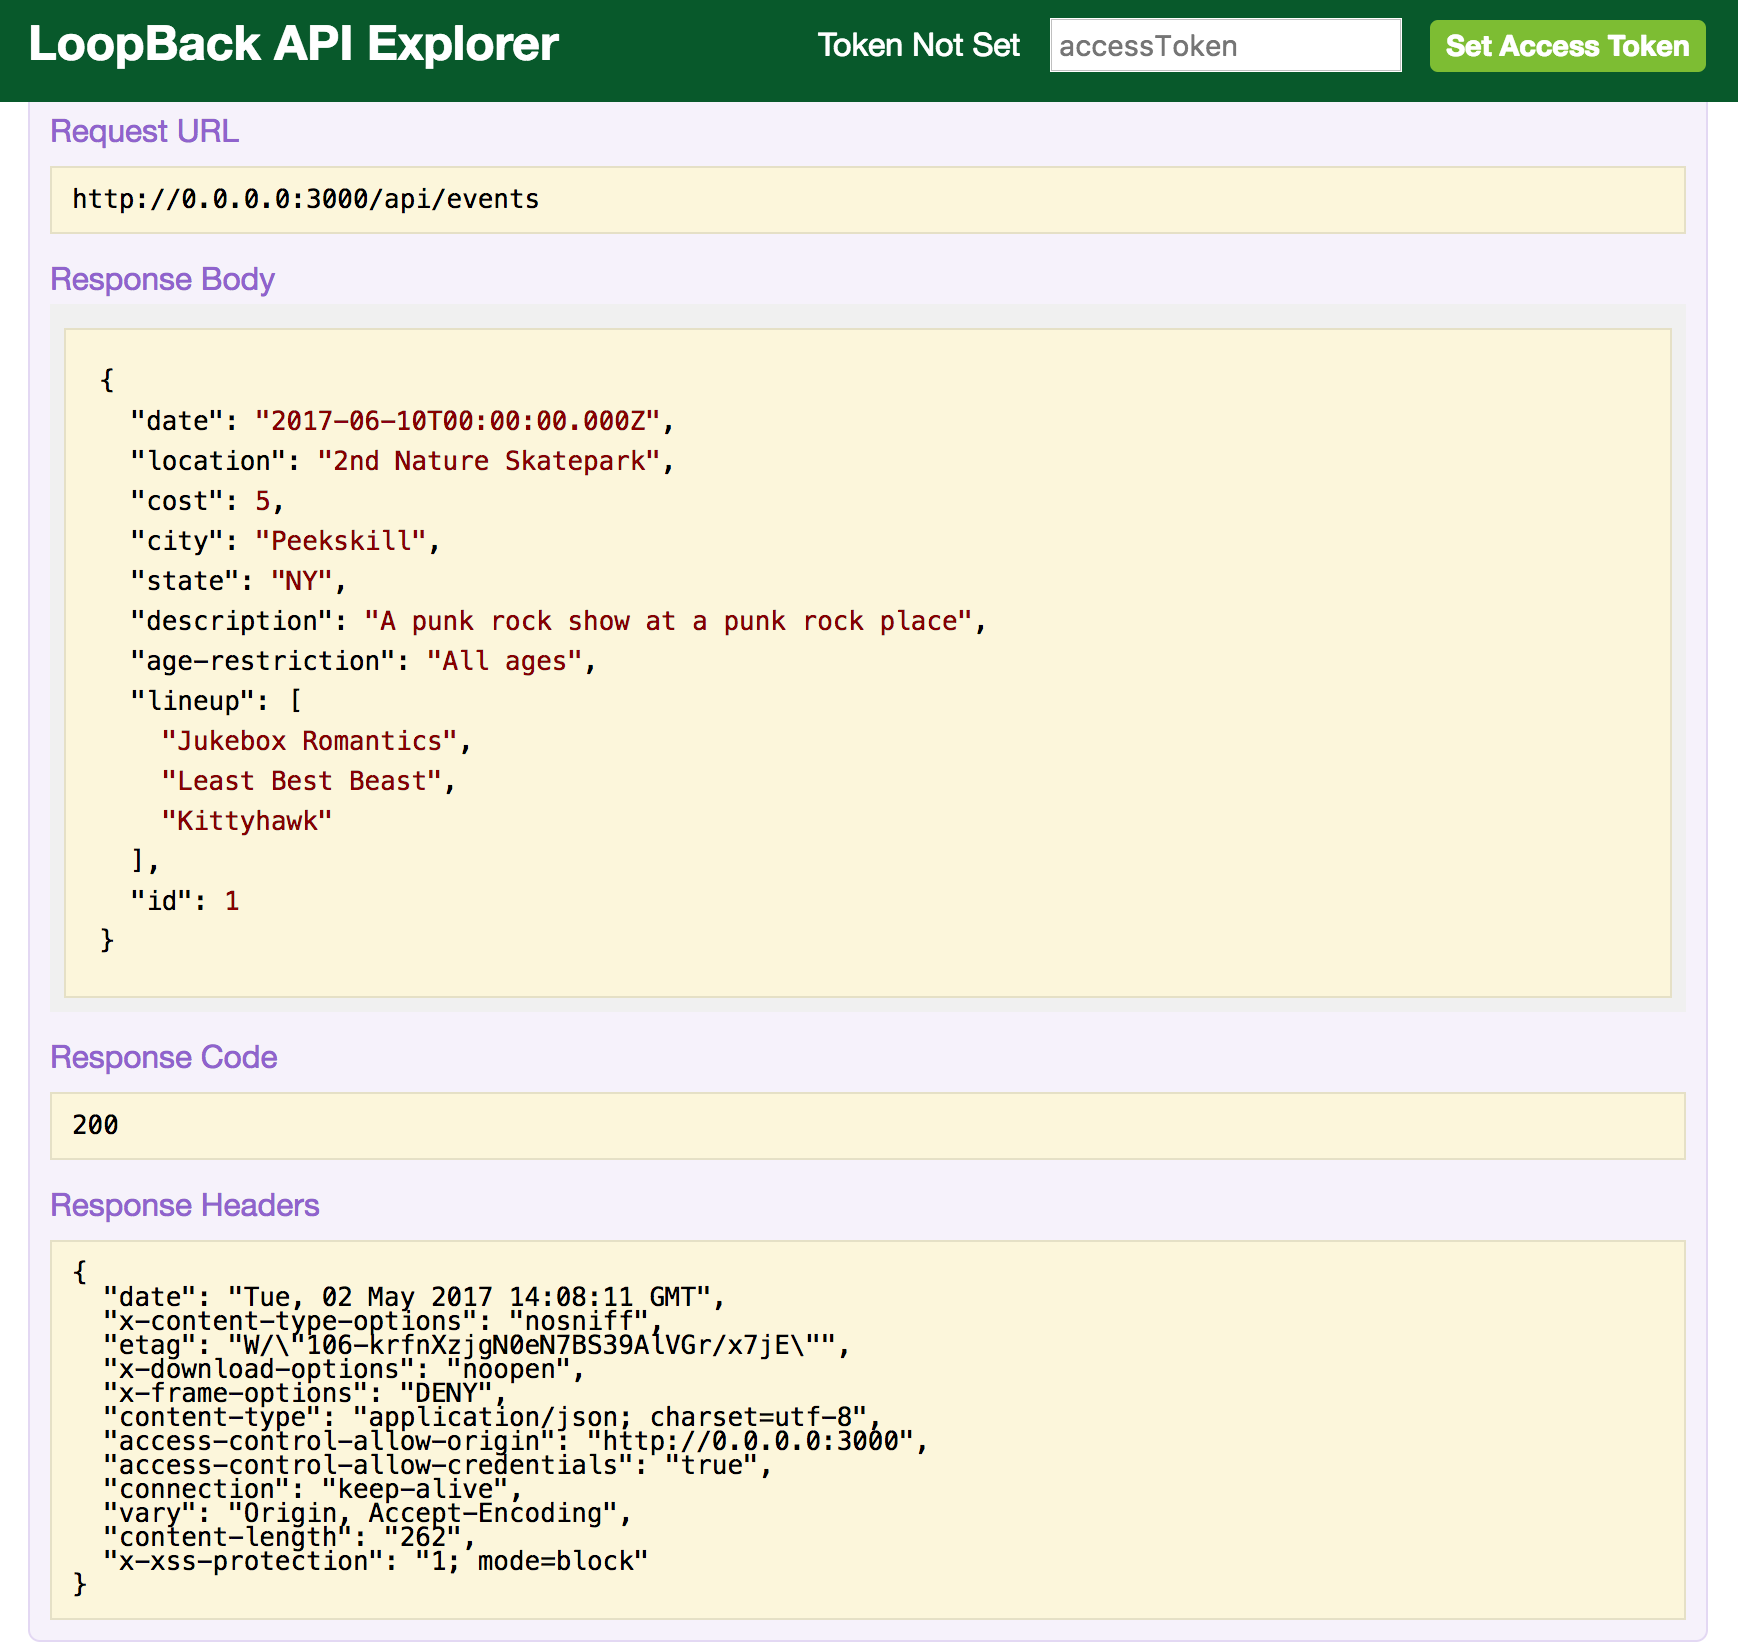 LoopBack API Explorer - POST method response